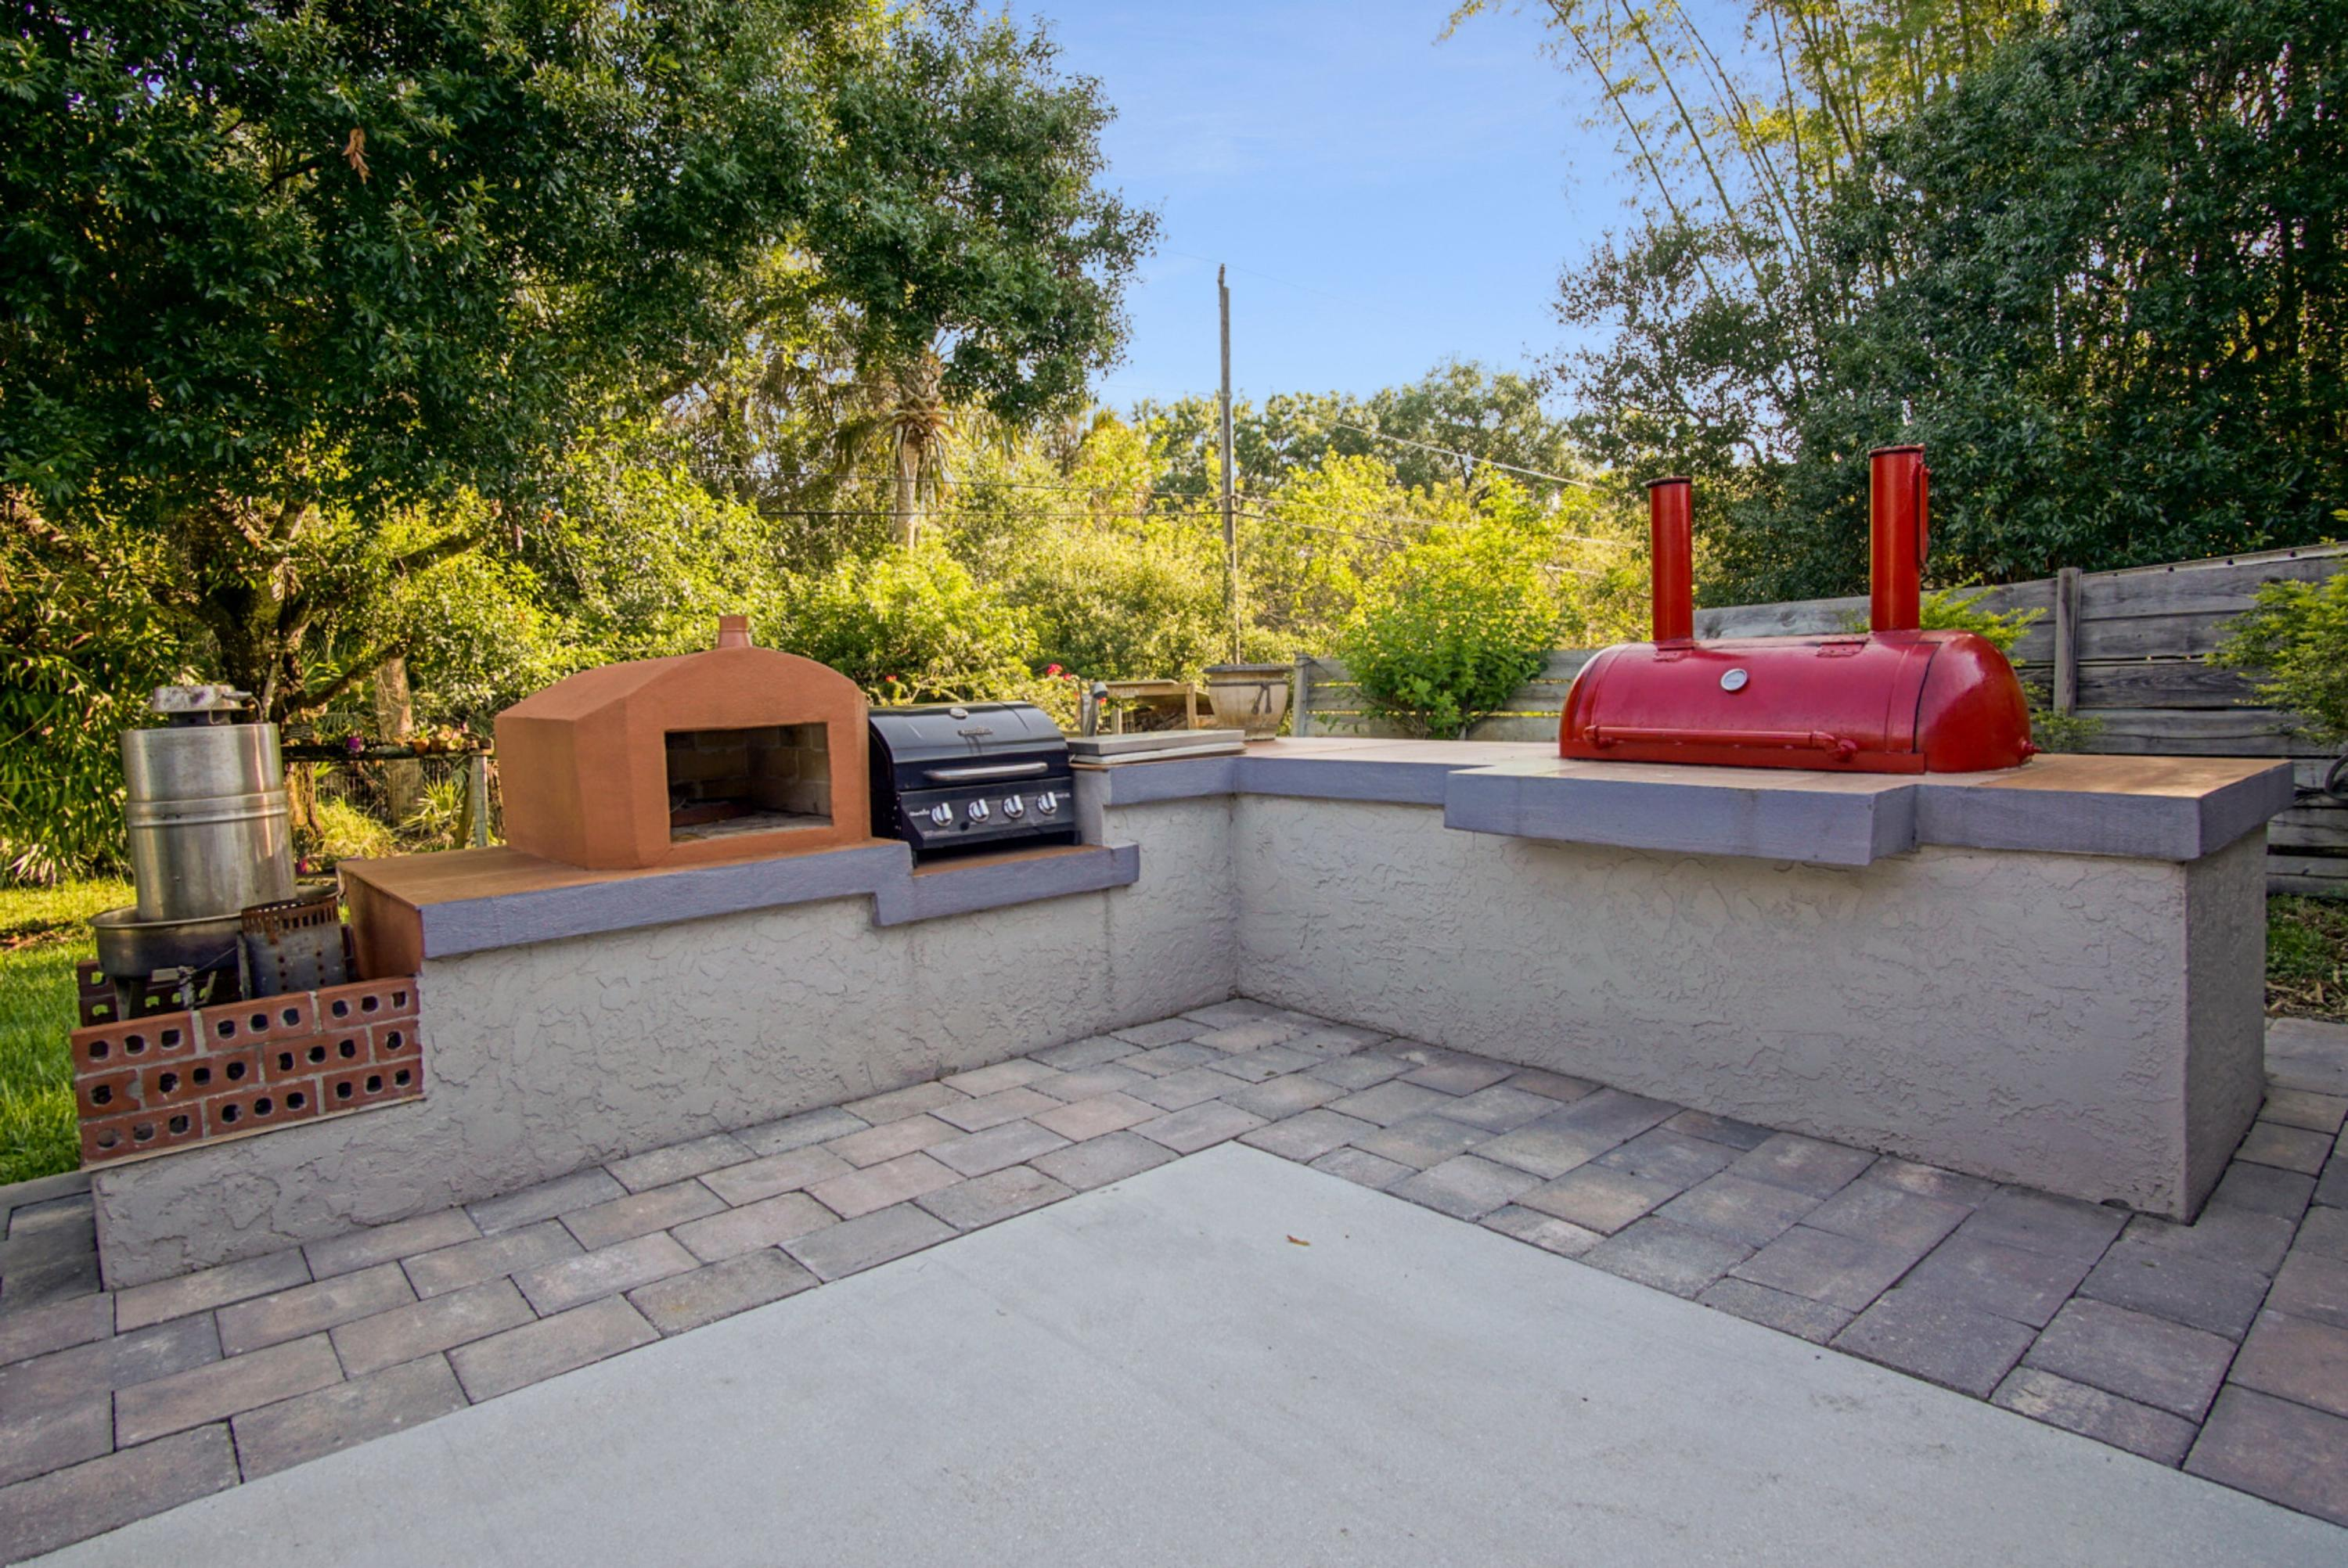 OUTDOOR BBQ & PIZZA OVEN